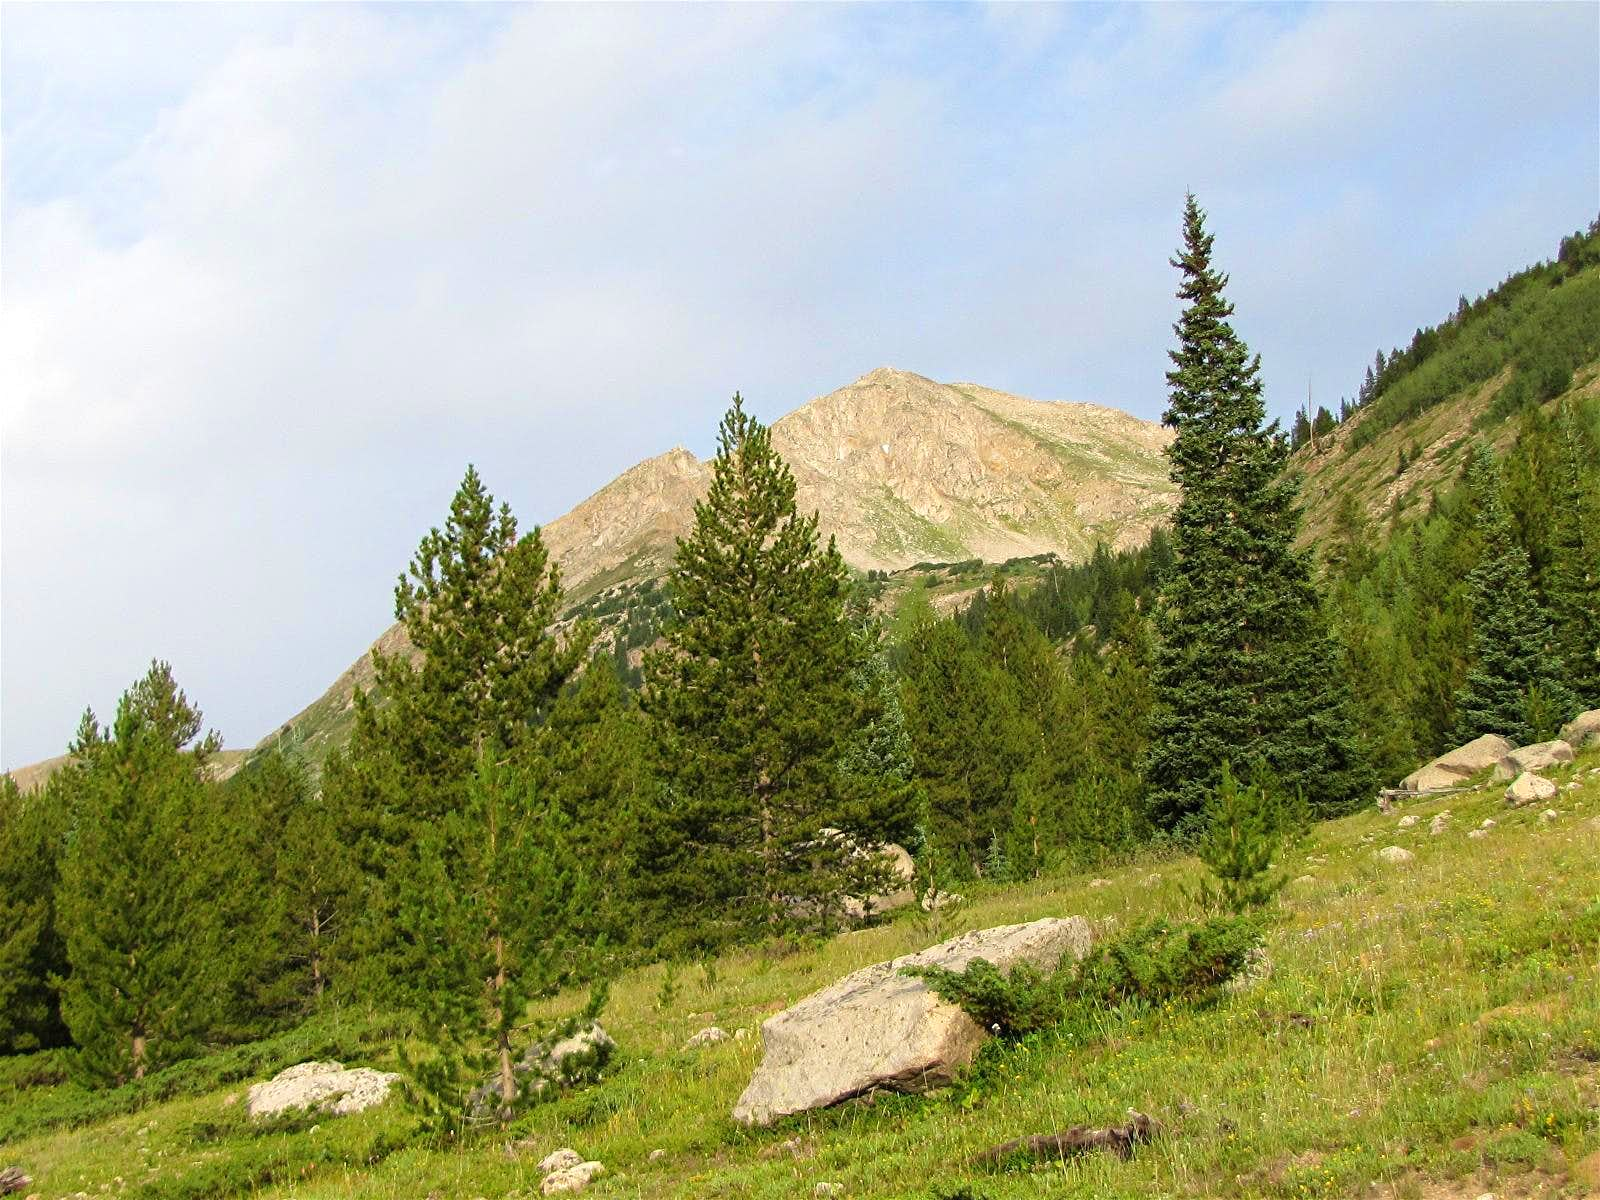 Sheep Rock Mountain (Peak 13255 ft)